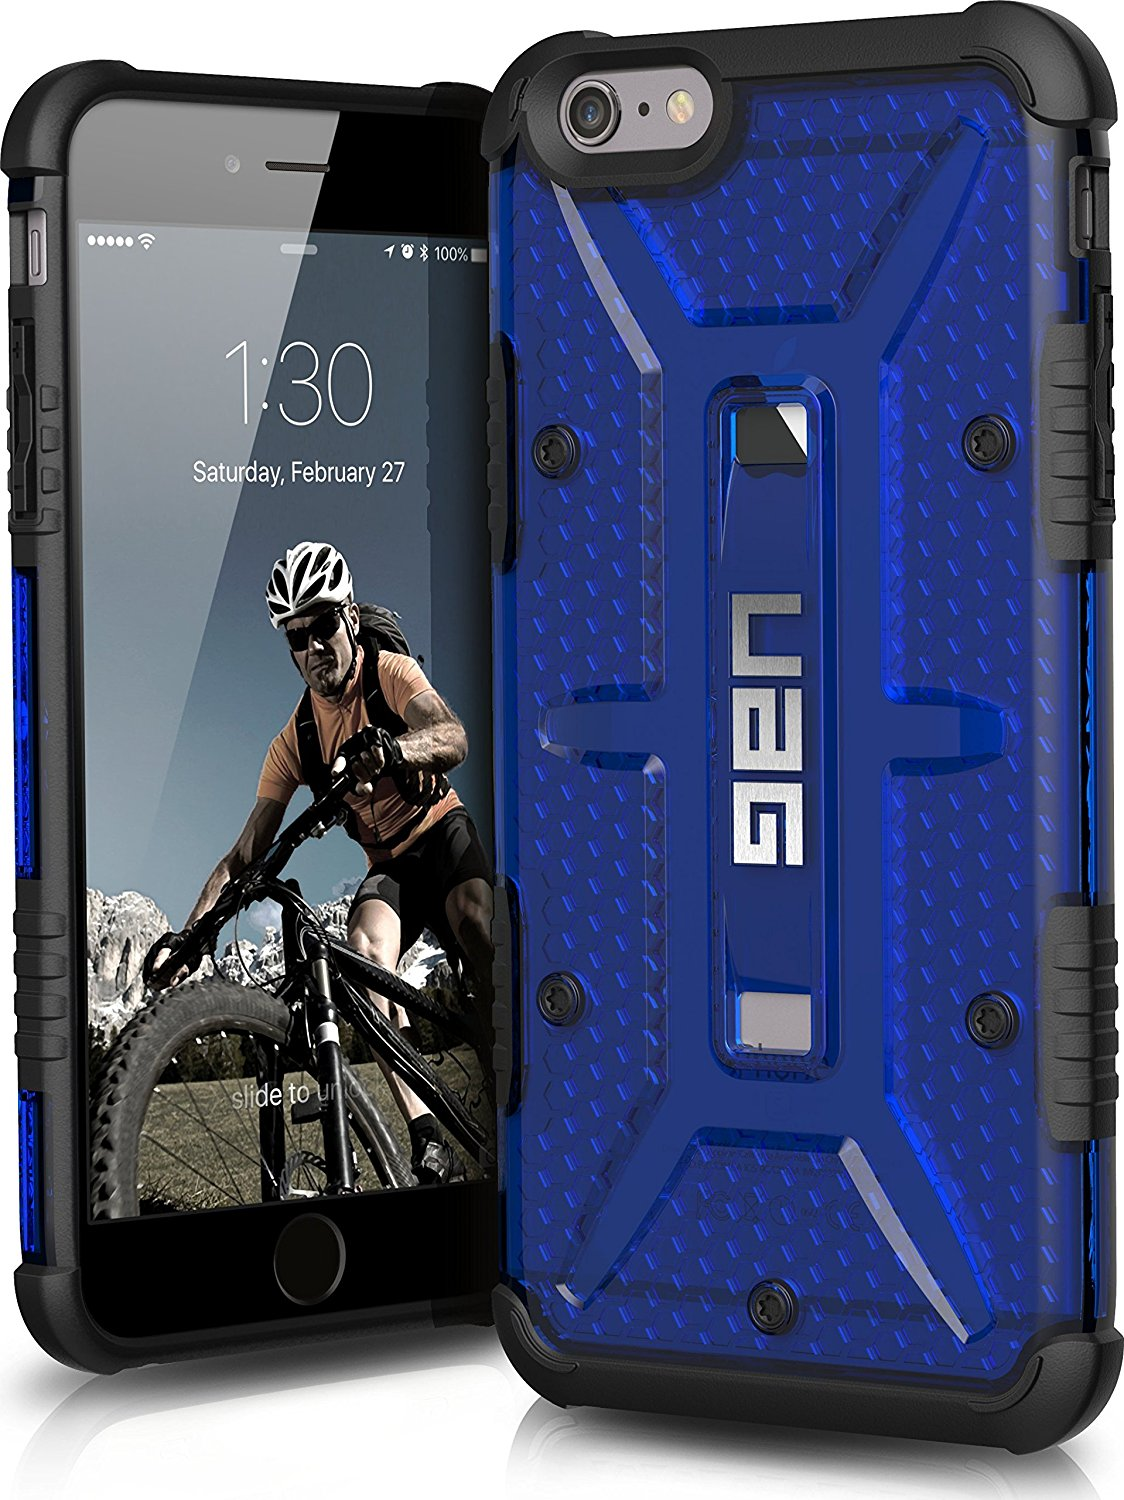 UAG Θήκη Feather-Light Composite iPhone 6 Plus/6S Plus - Cobalt Blue (UAG-IPH6/6SPLS-CBT-VP)